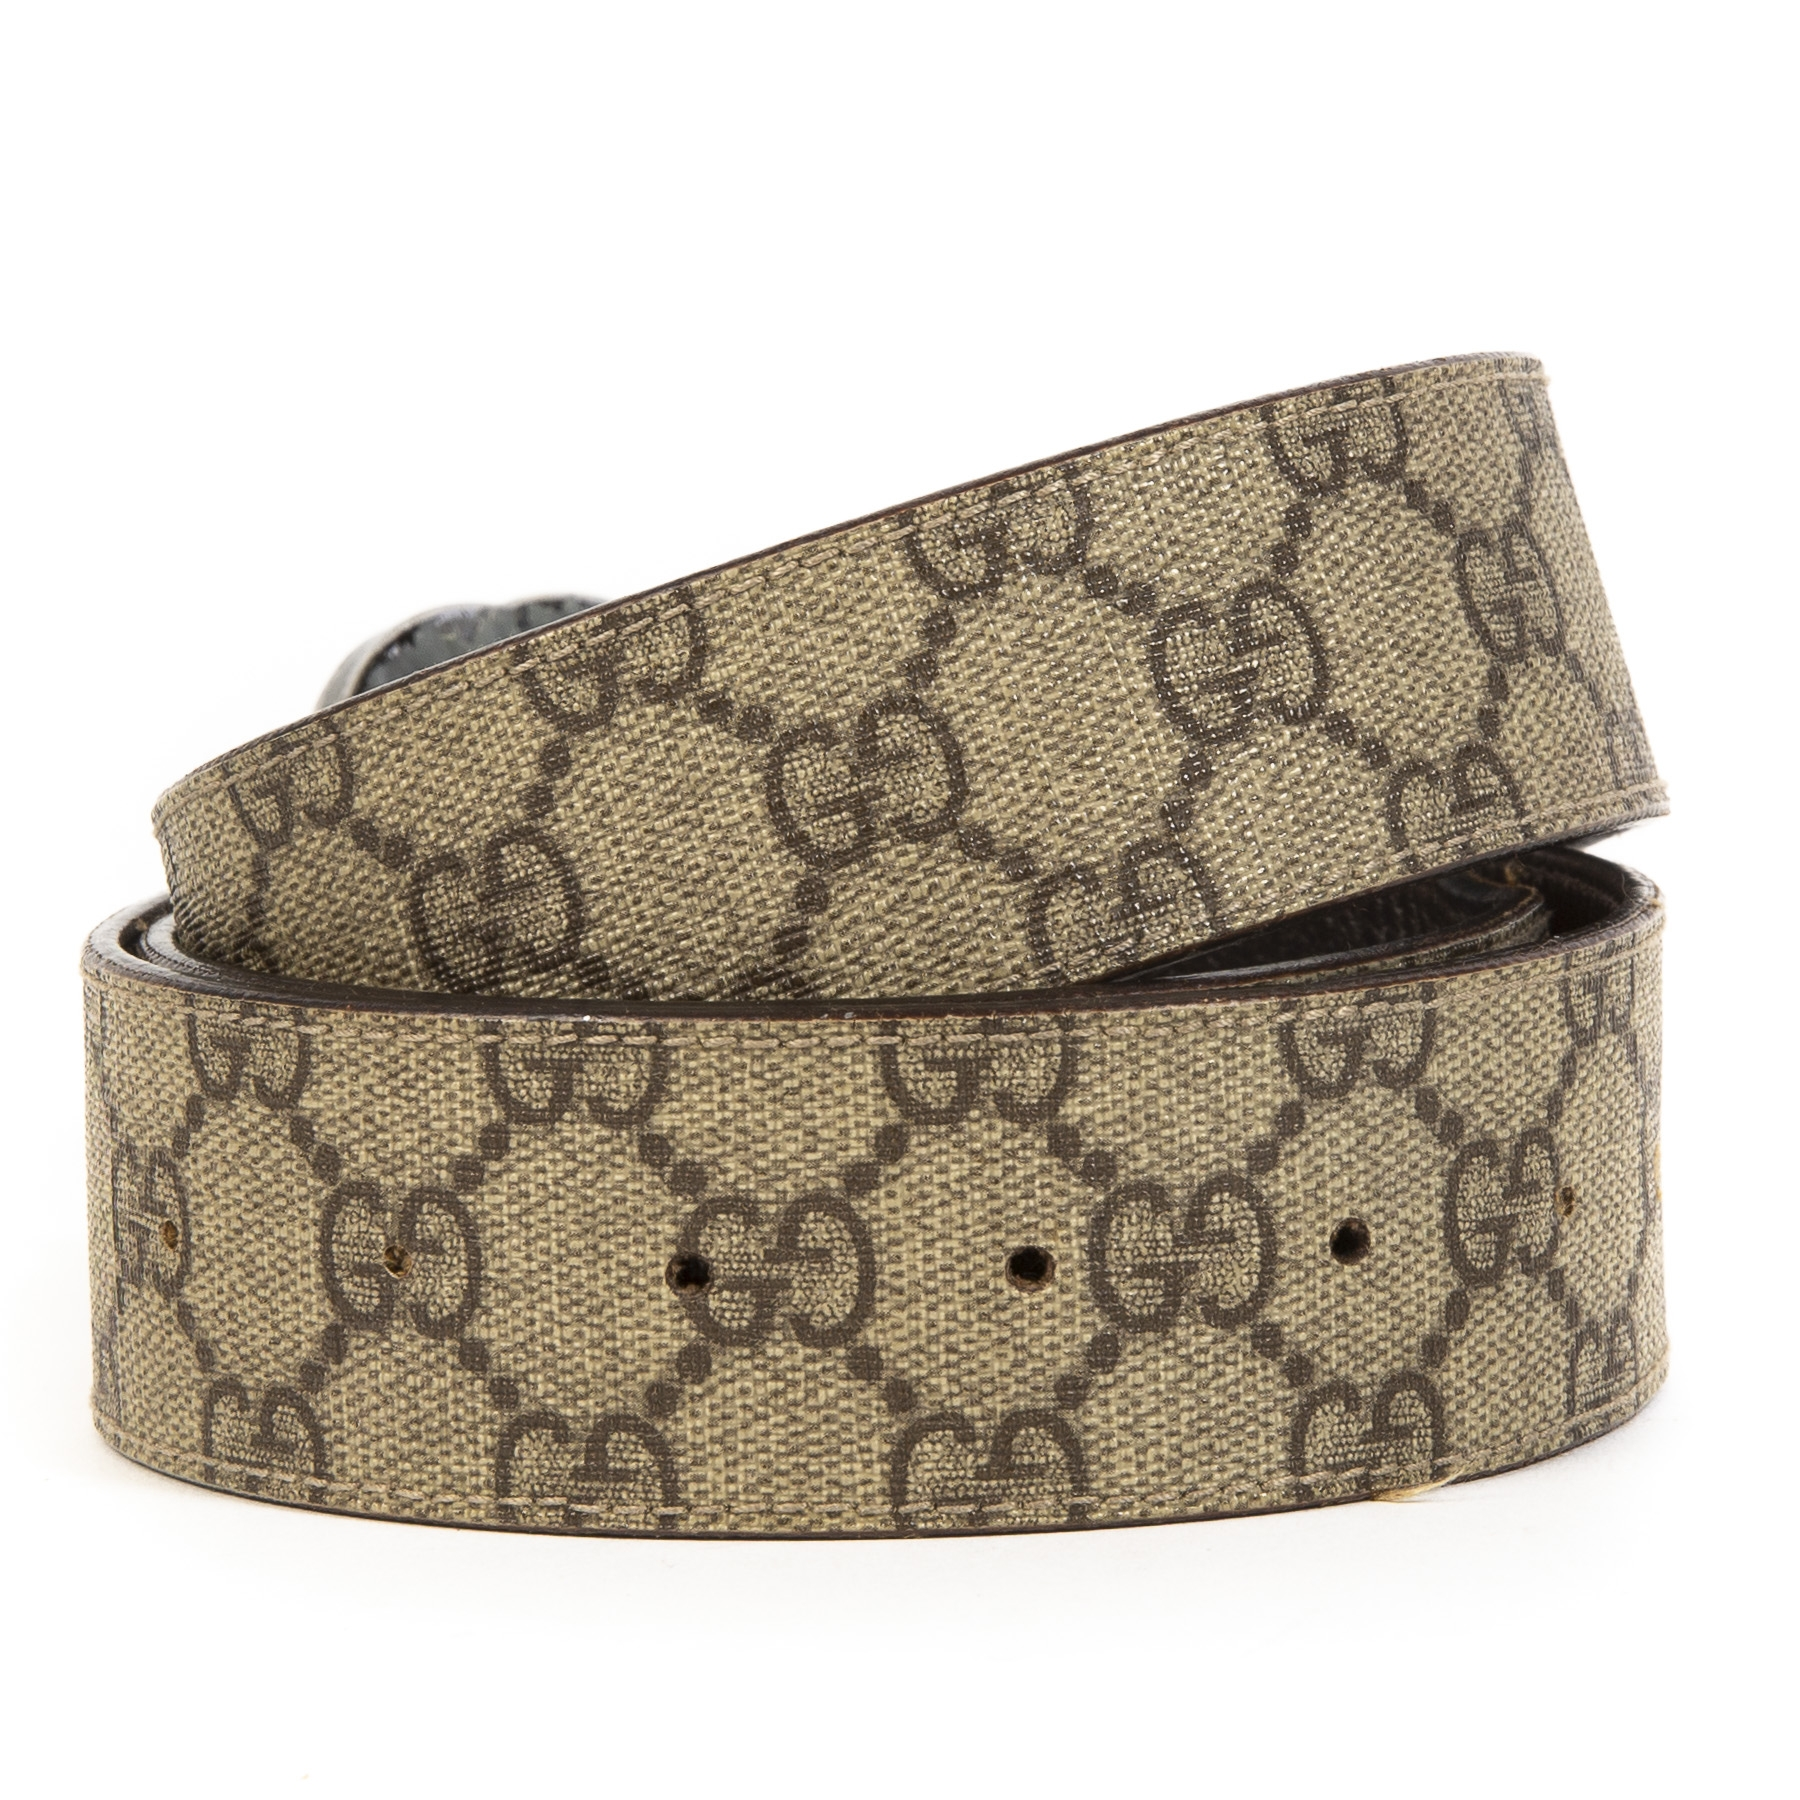 Buy authentic secondhand Gucci belt, accessories at labellov webshop.